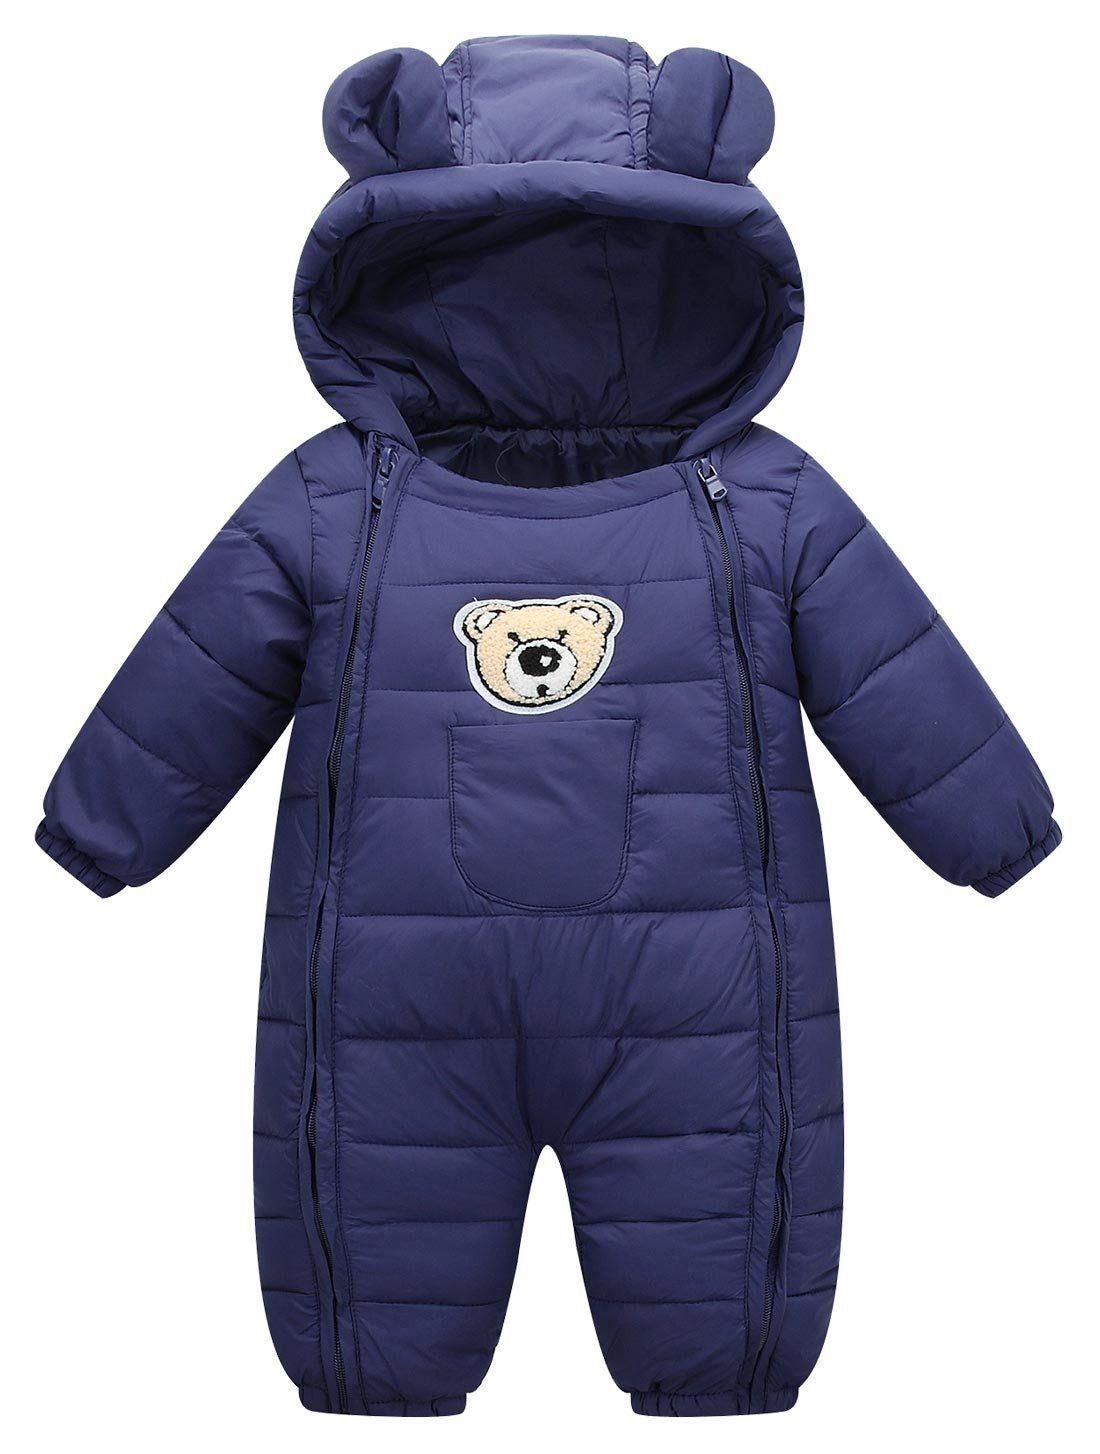 e0622b97f1db Newborn Toddler Baby Clothes Girls Boys Romper Winter Jumpsuit ...